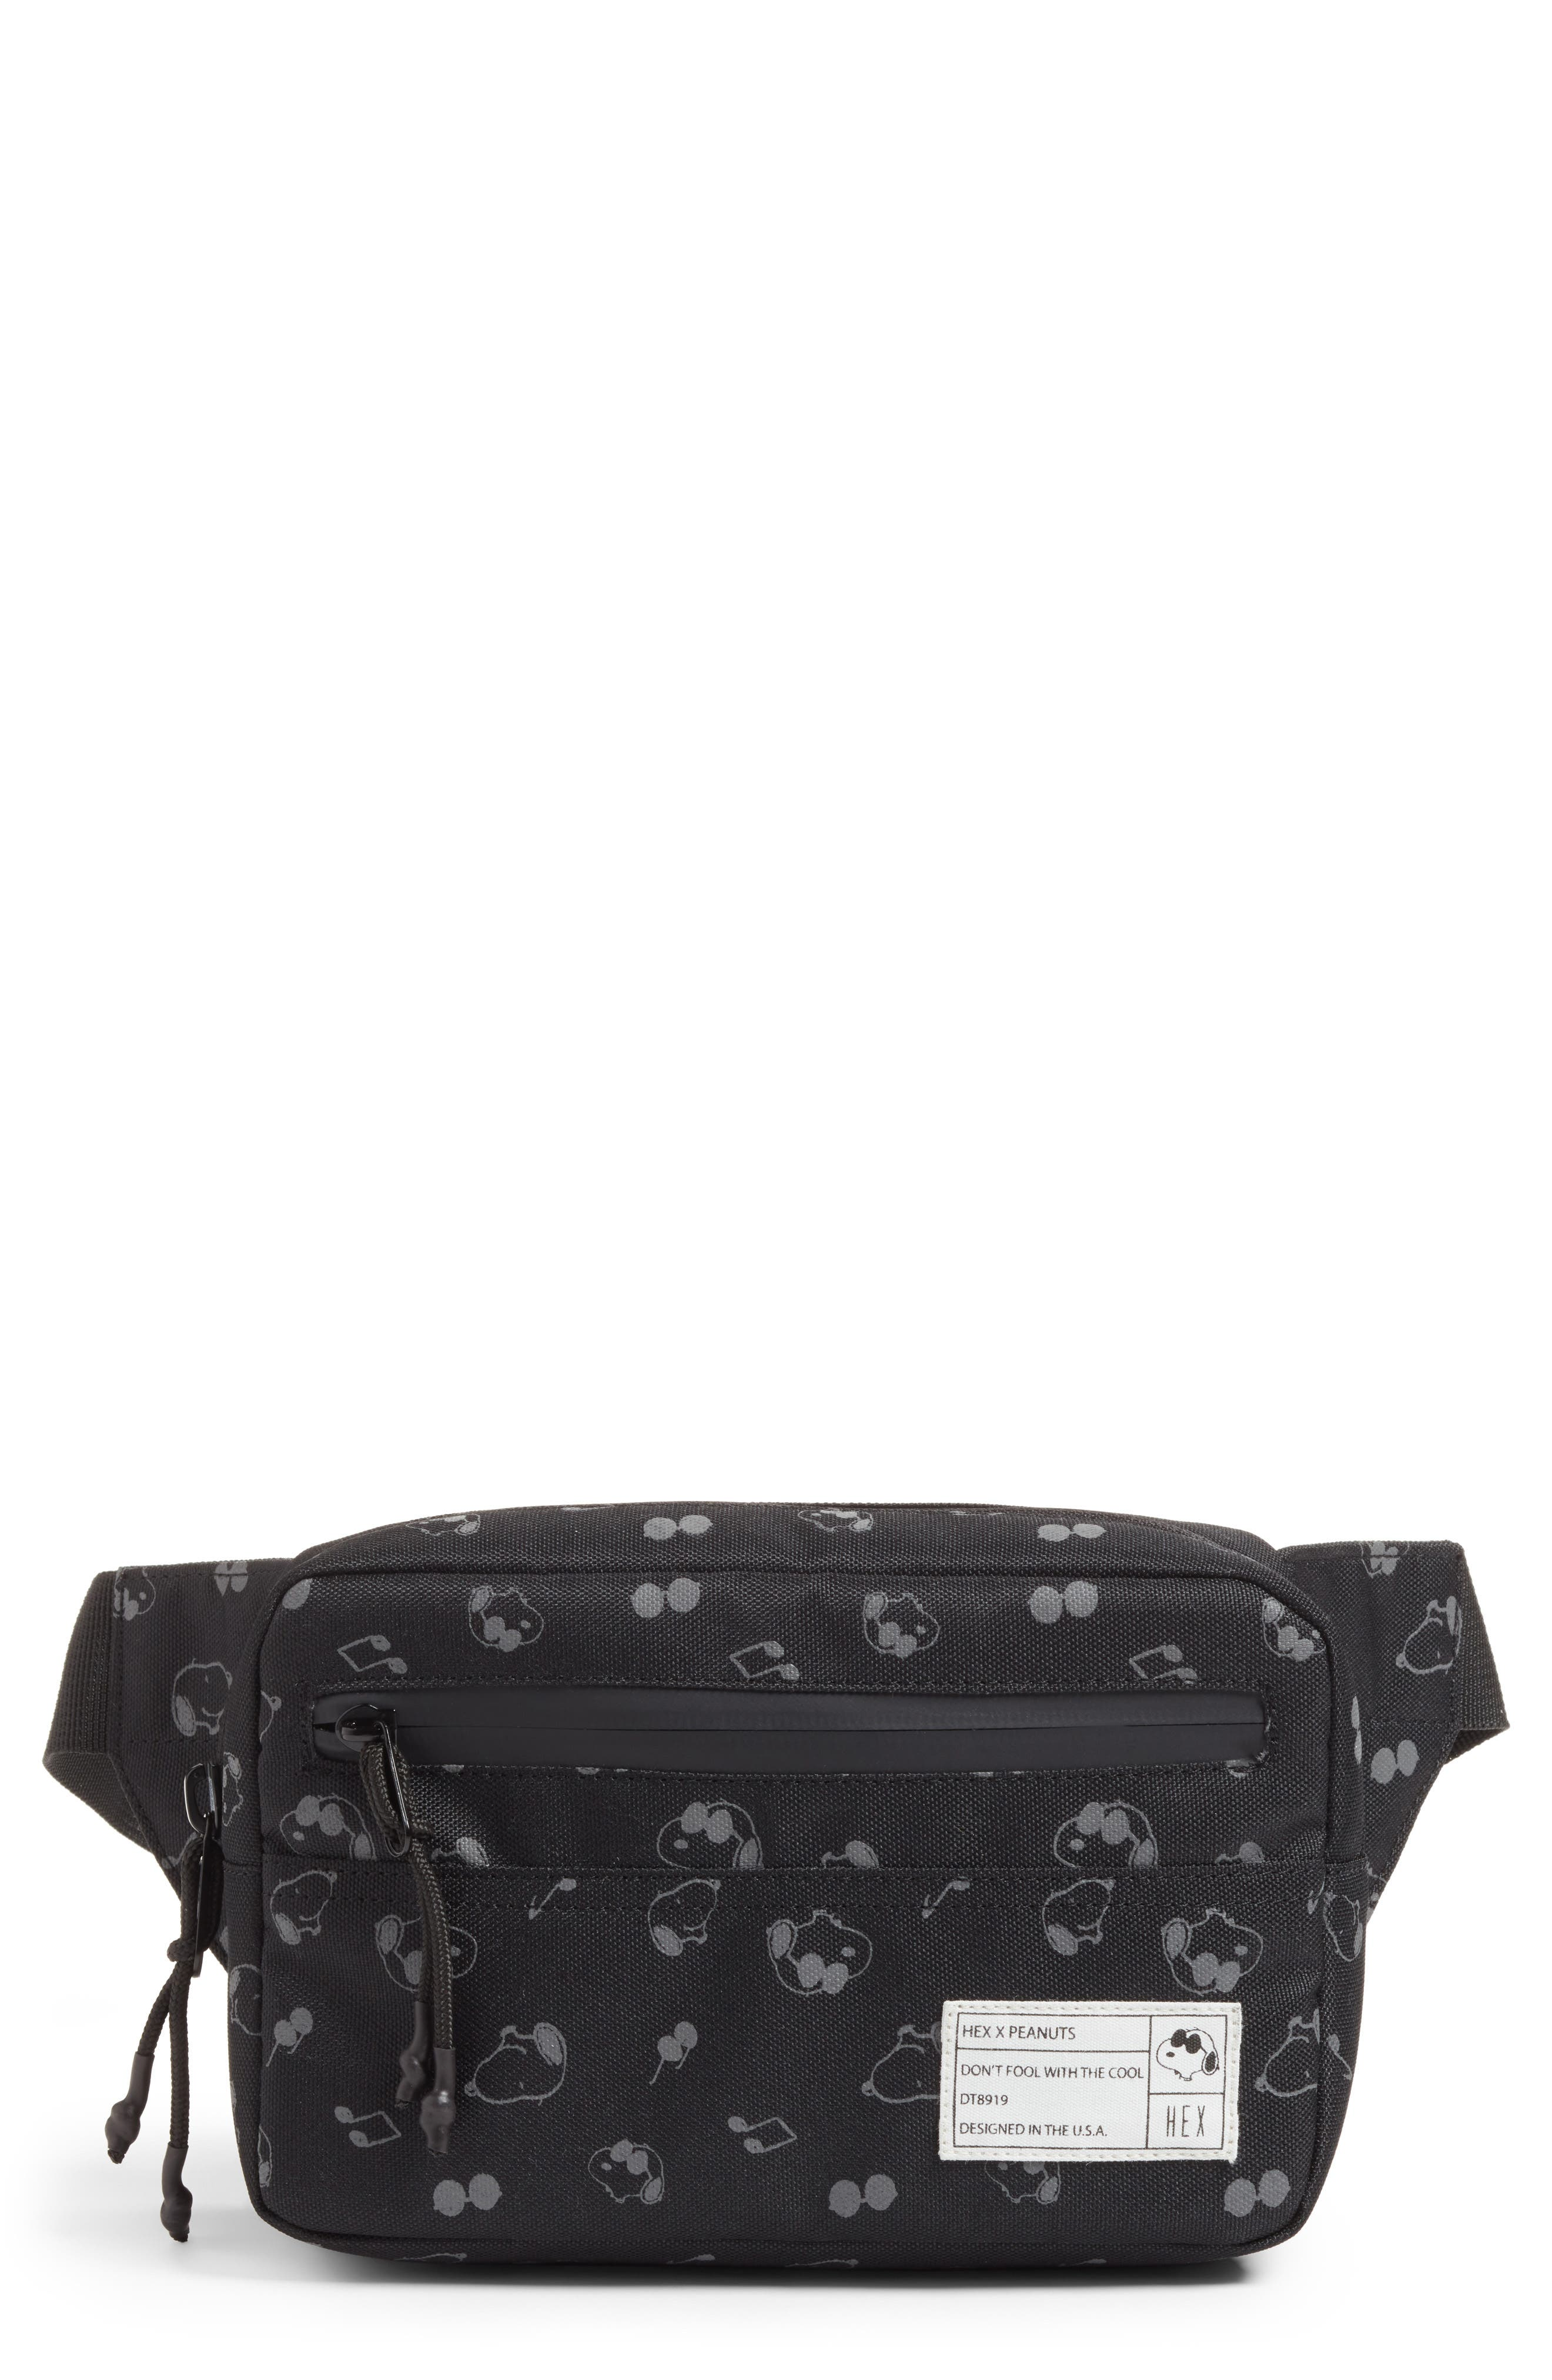 Alternate Image 1 Selected - HEX x Peanuts Water Resistant Waist Pack (Limited Edition) (Nordstrom Exclusive)